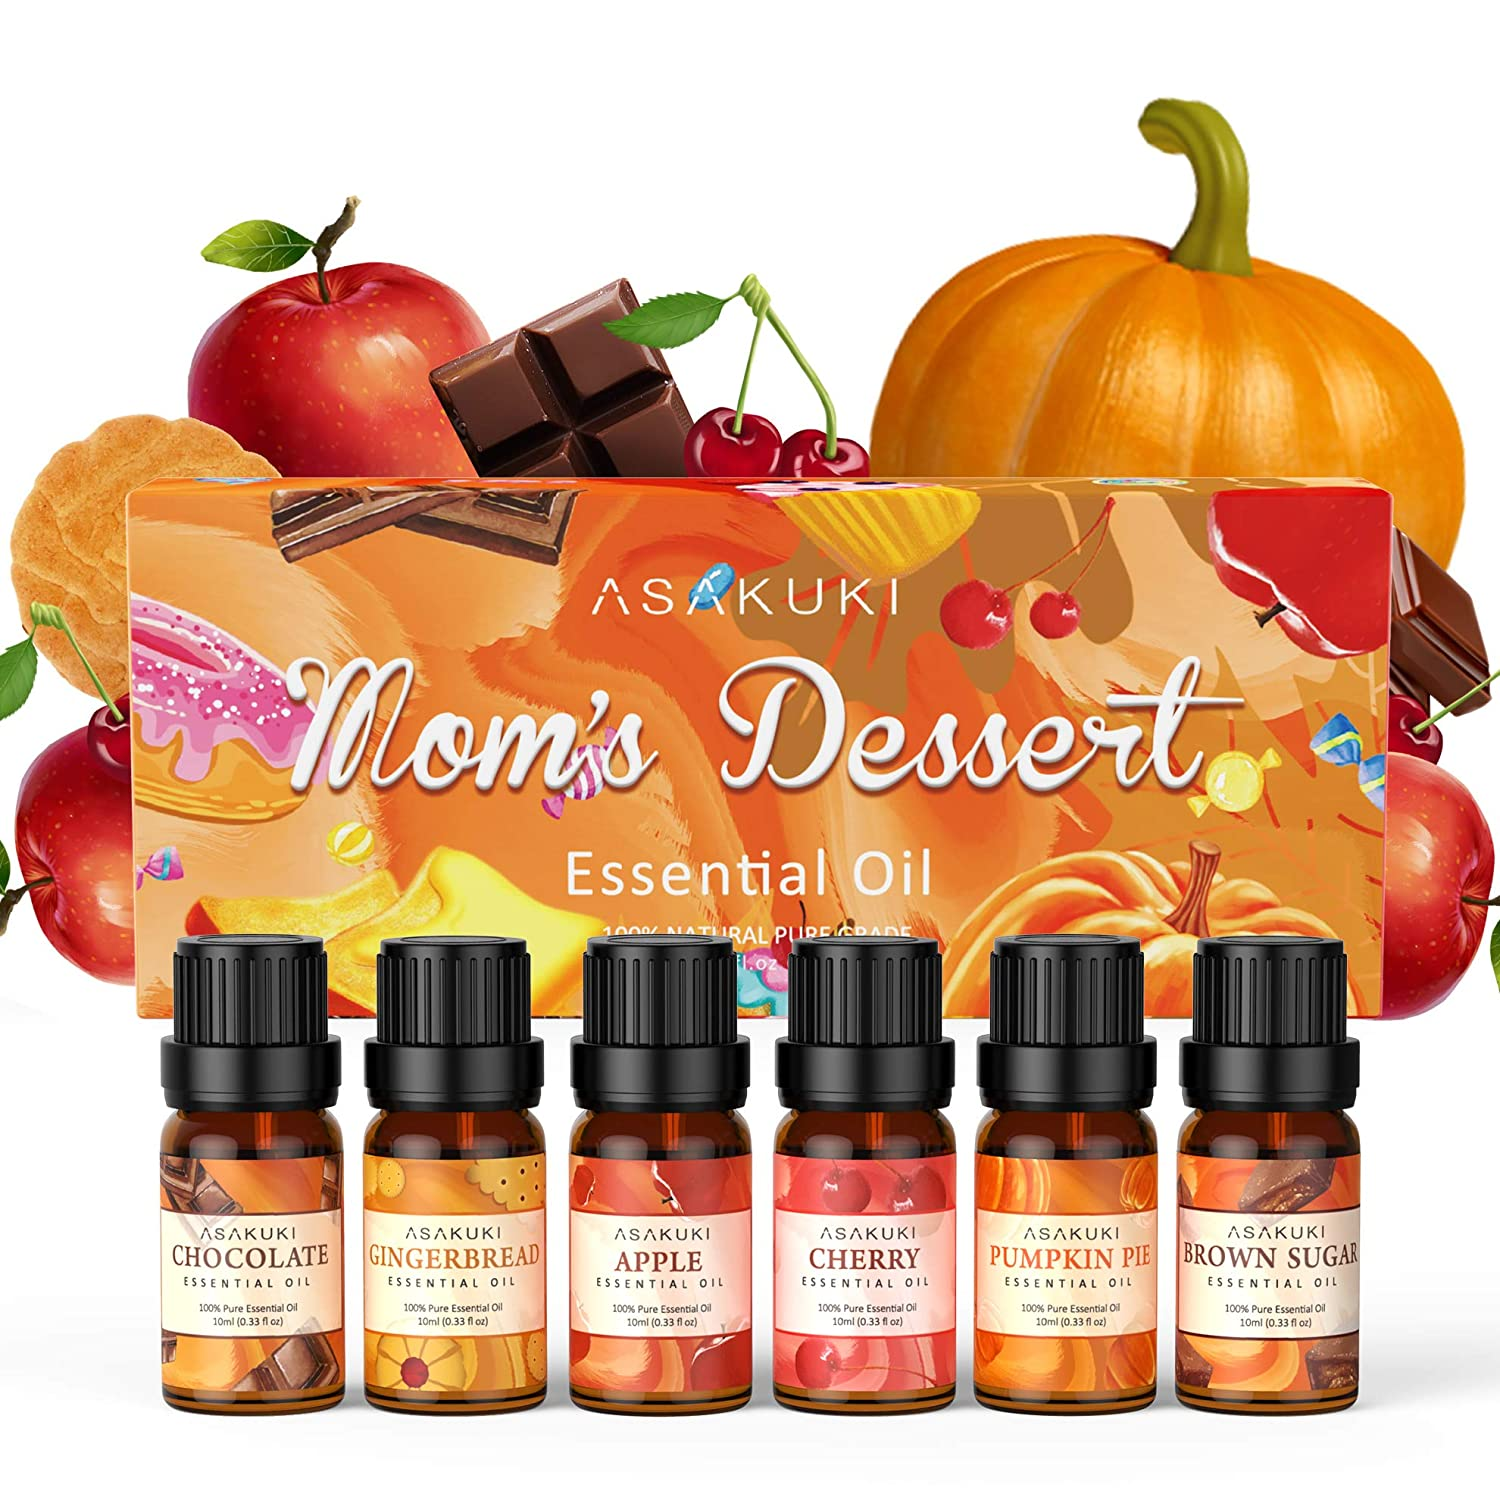 ASAKUKI Essential Oils Set with Gingerbread, Brown Sugar, Chocolate, Cherry, Apple and Pumpkin Pie Scents; Fall and Christmas Essential Oils for Diffusers for Home, Car, Candles and Soap